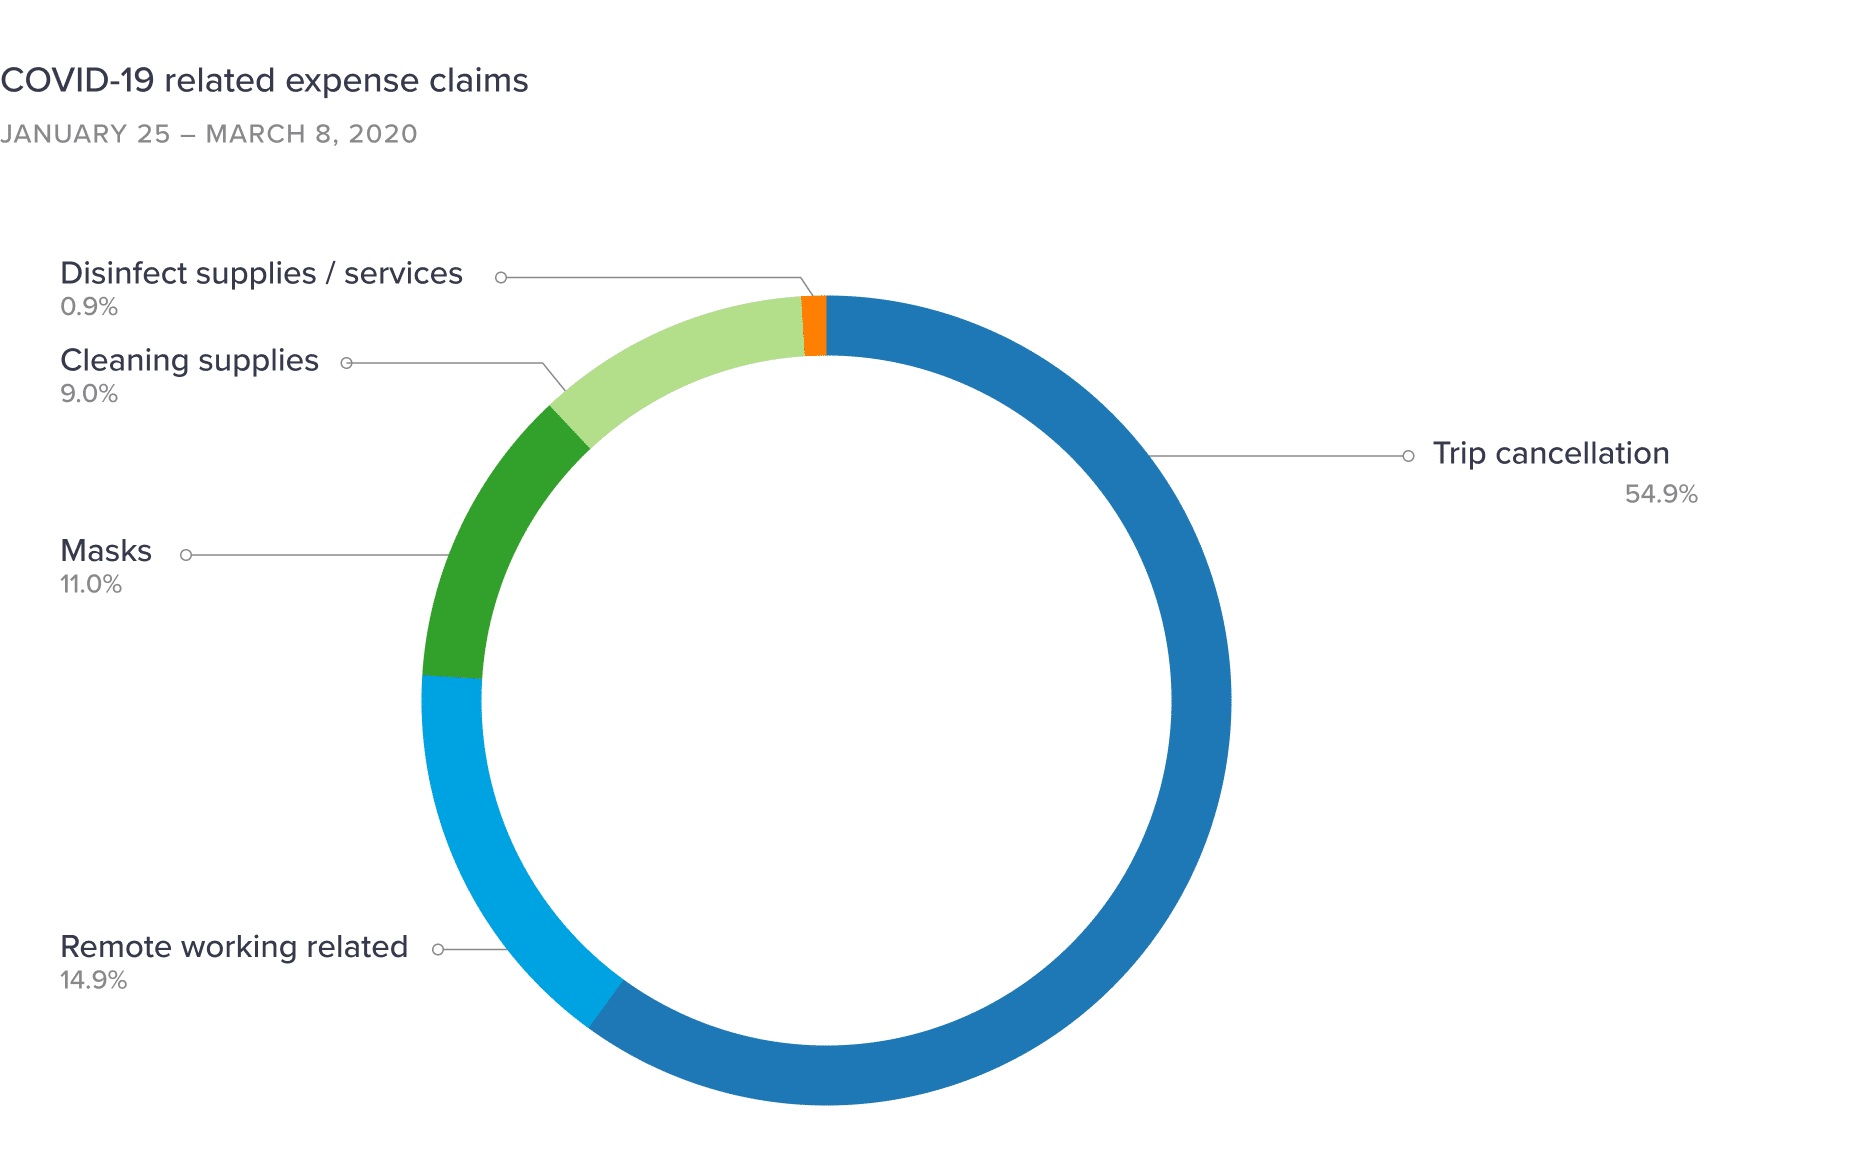 COVID-19 related expense claims